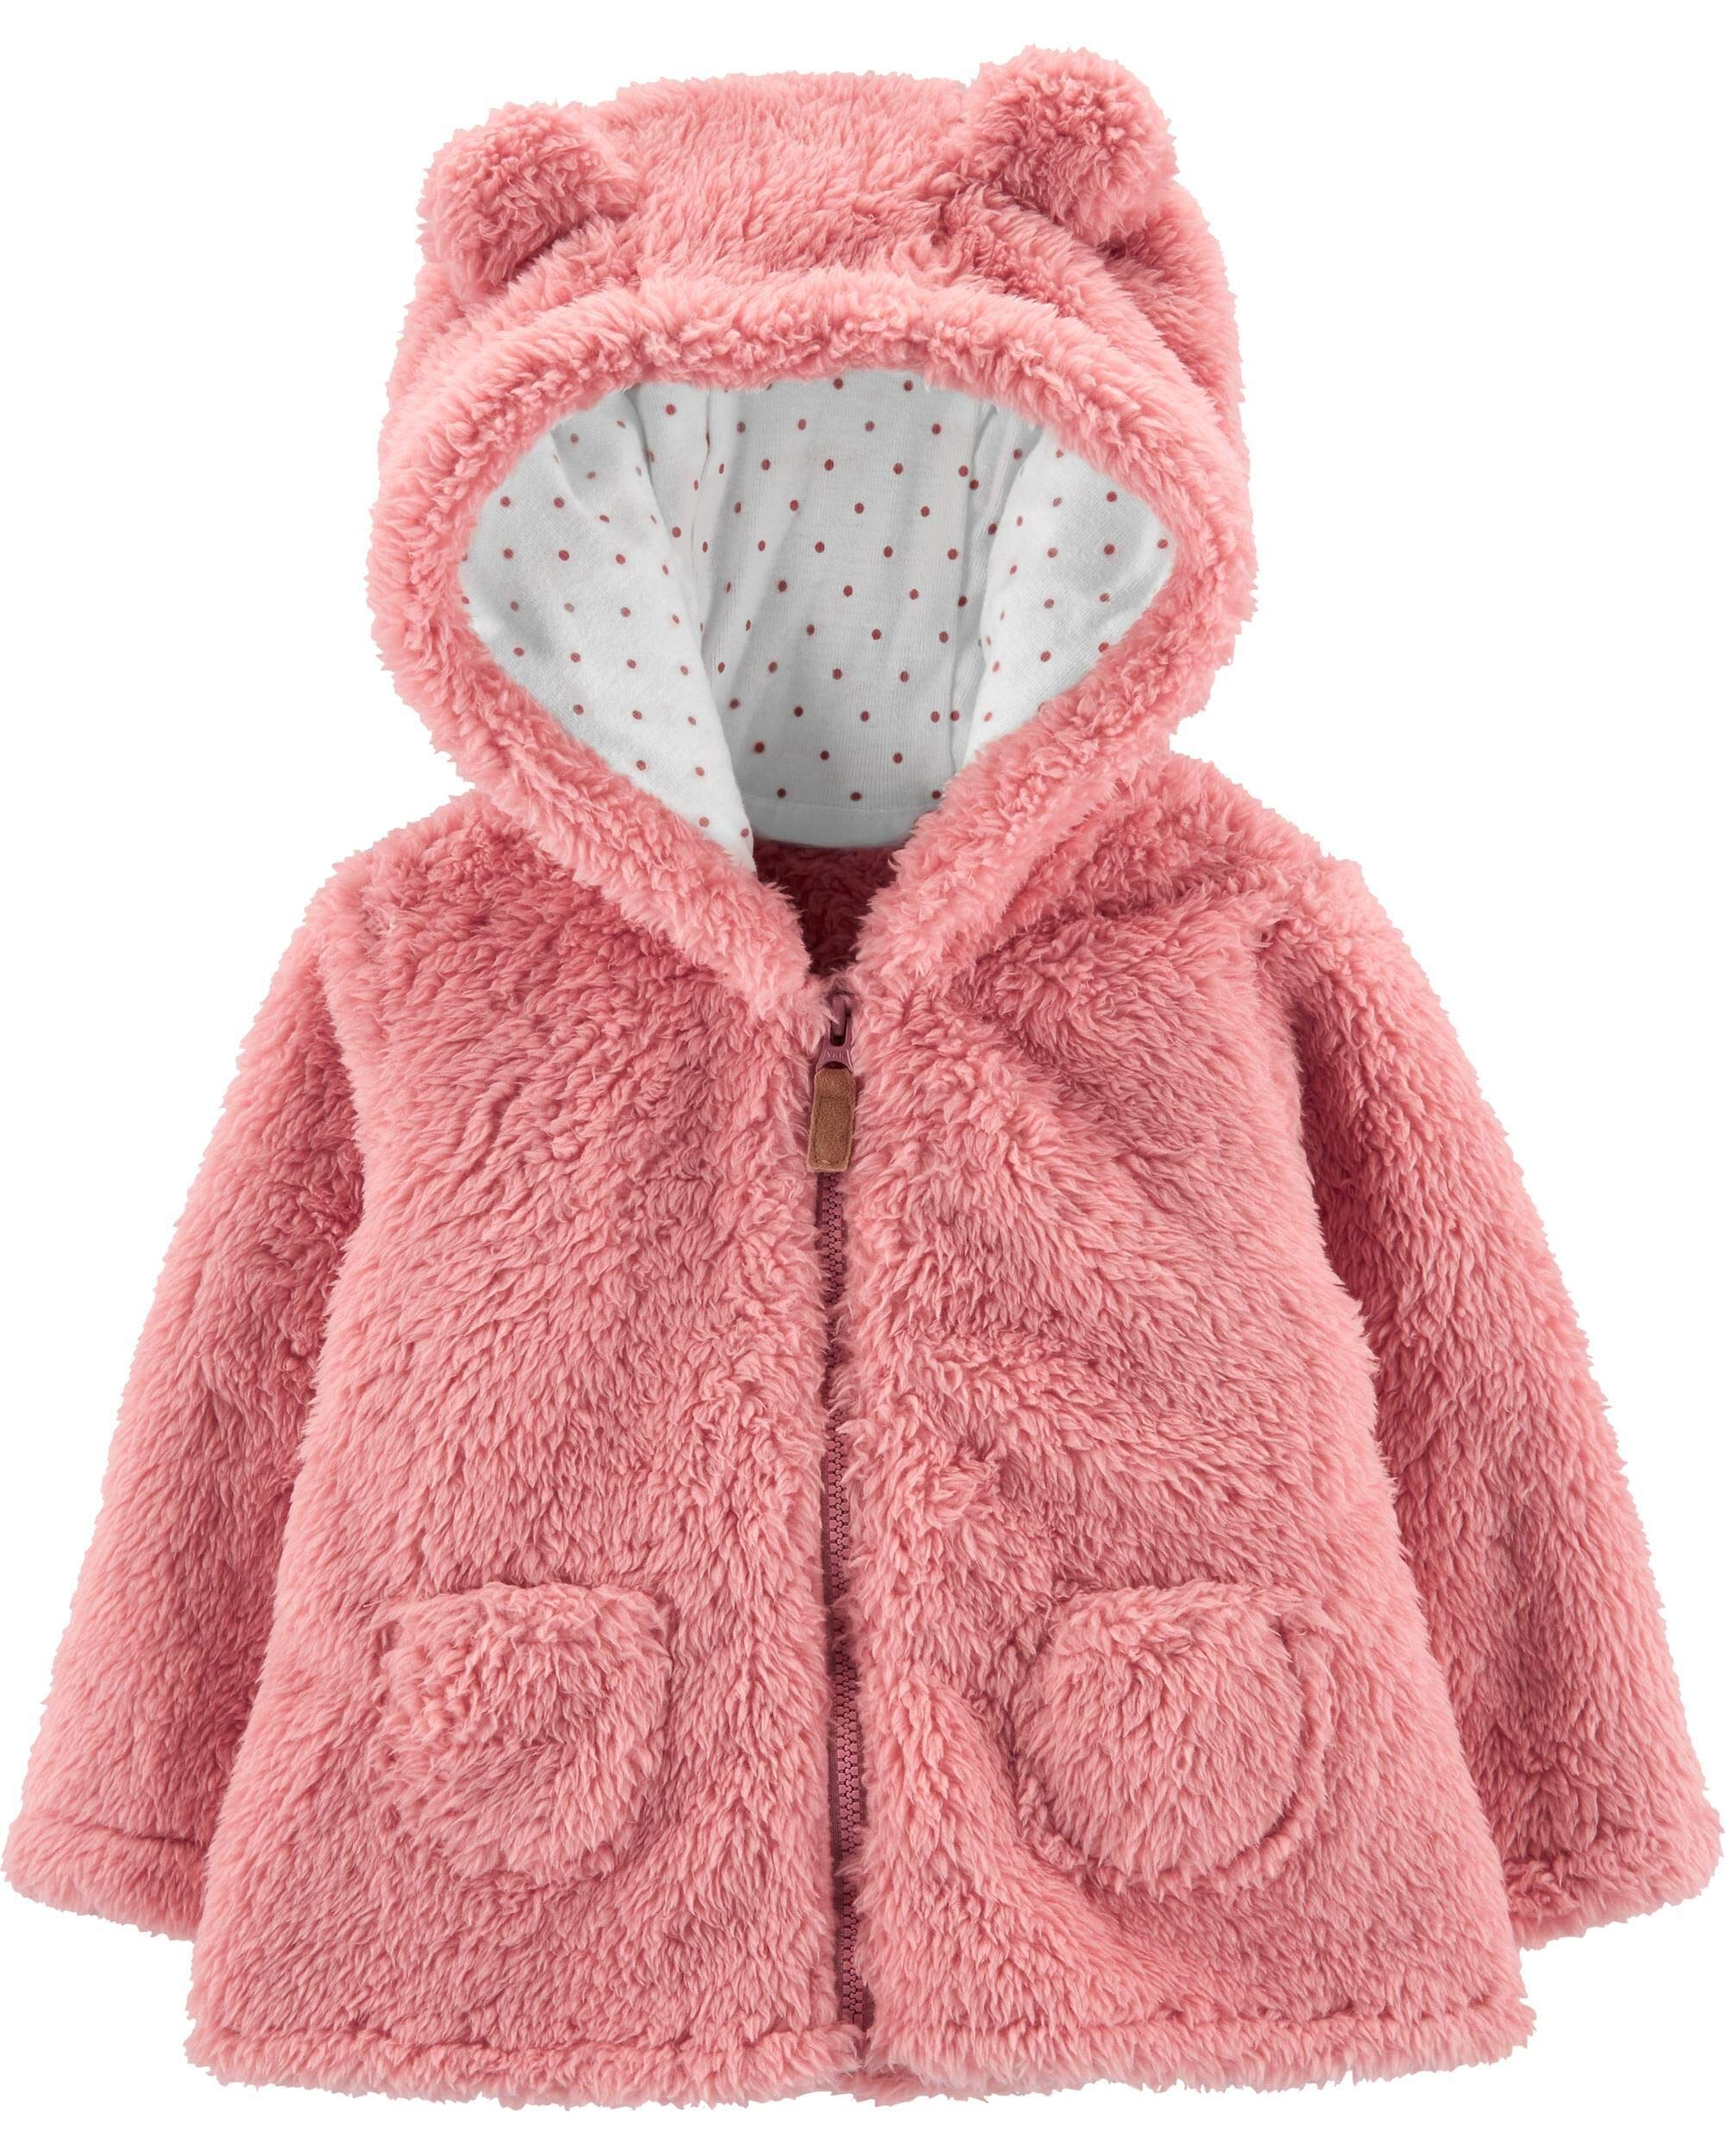 Carter's Zip-Up Sherpa Cardigan Jacket, Pink Sherpa, 18 Months by Carter's